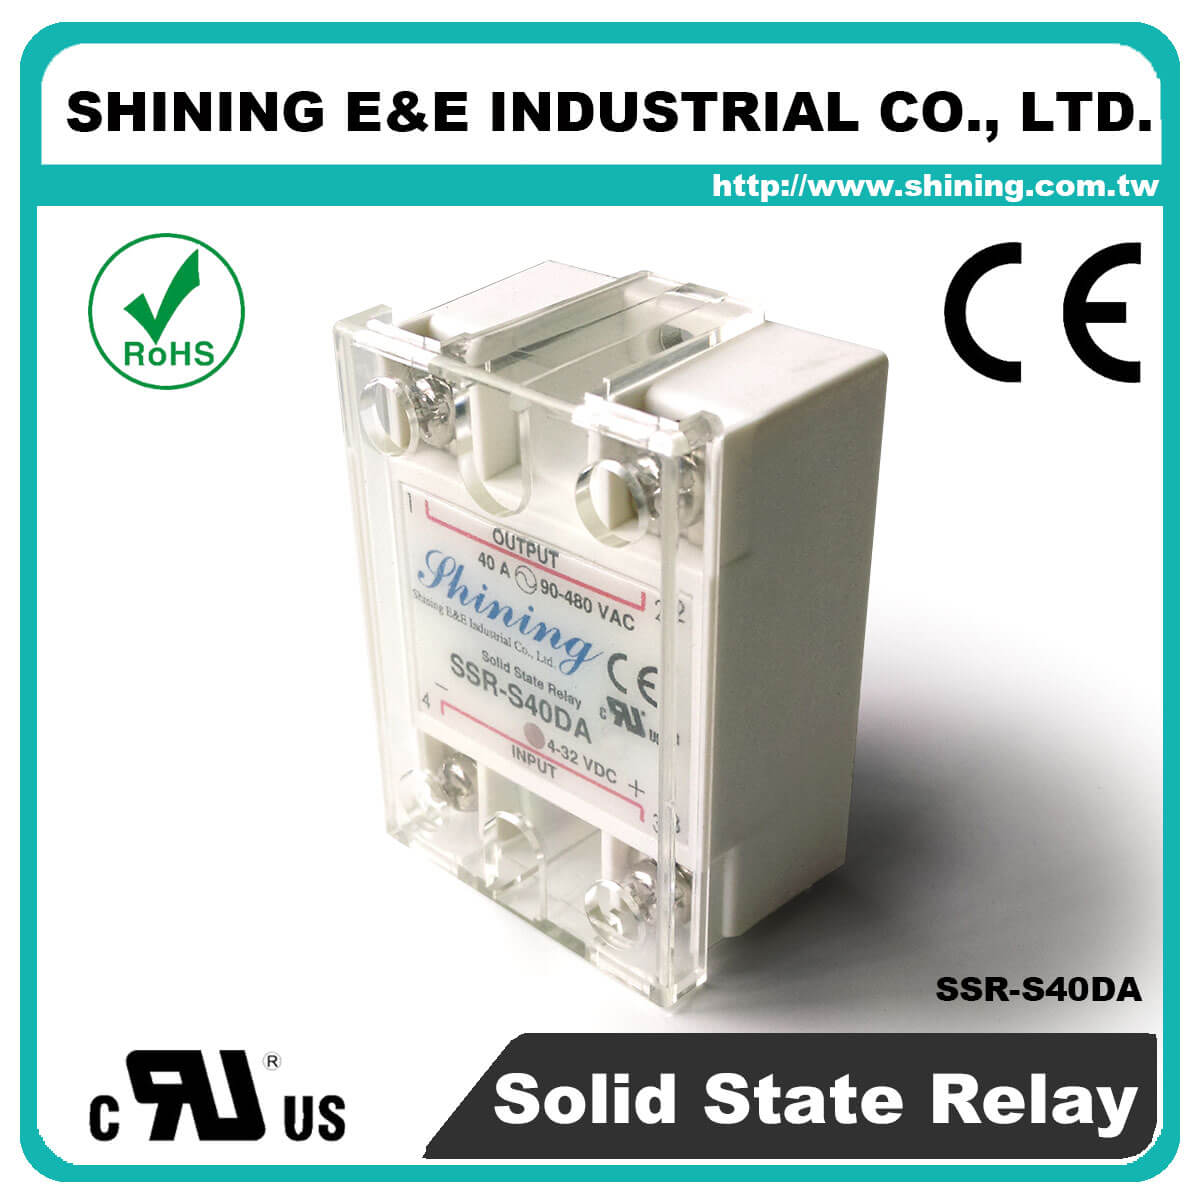 Ssr Sxxda Series Dctoac Single Phase Solid State Relay Example S40da Dc To Ac 40a 280vac S